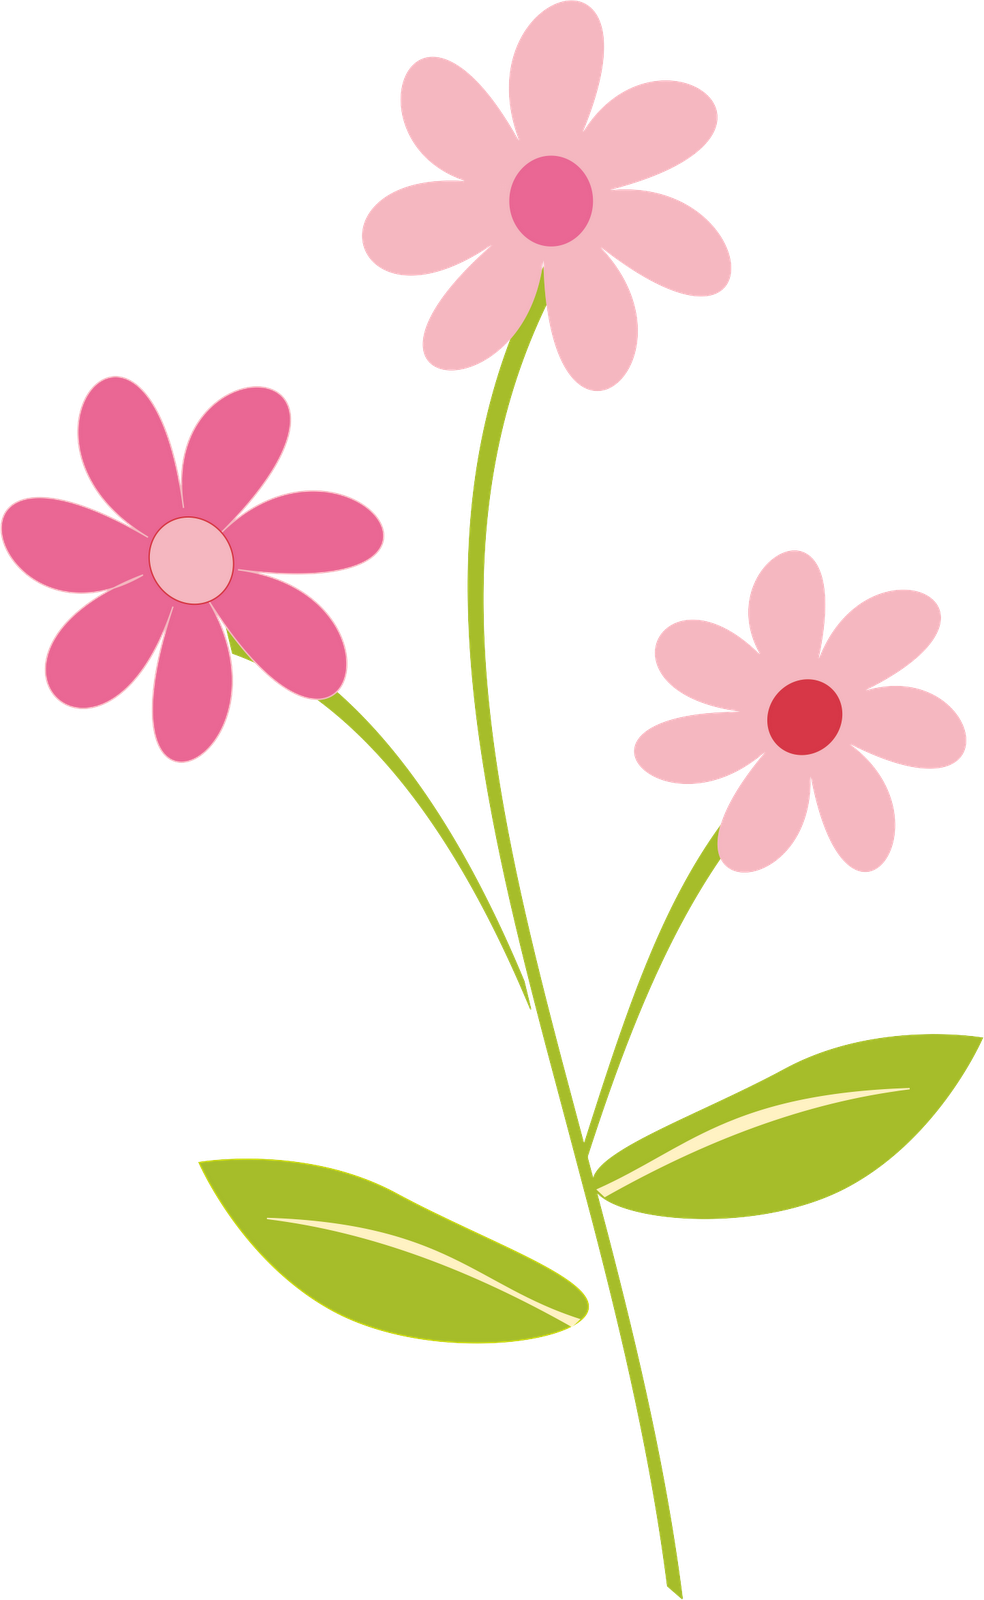 free flower clipart for kids at getdrawings com free for personal rh getdrawings com free flower clip art printable free flower clipart pictures